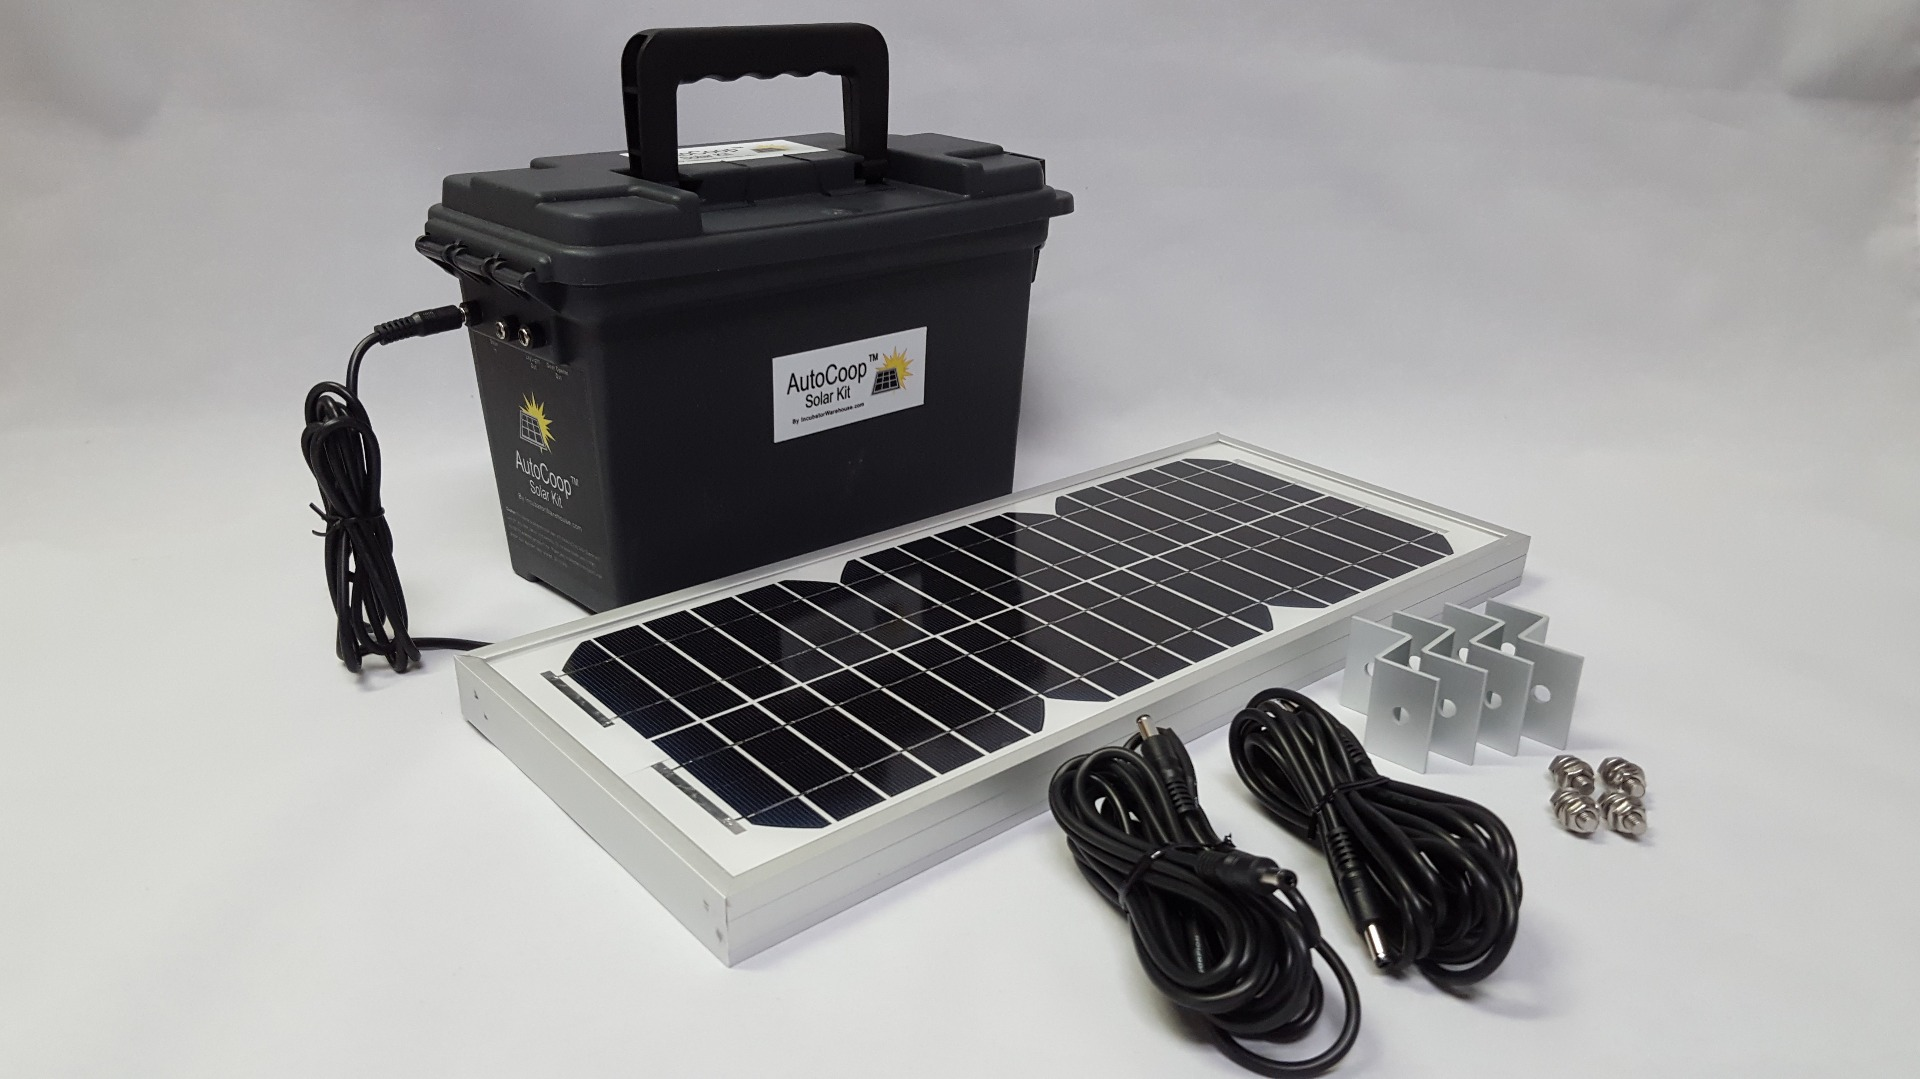 Solar Kit for the AutoCoop Automatic Coop Door